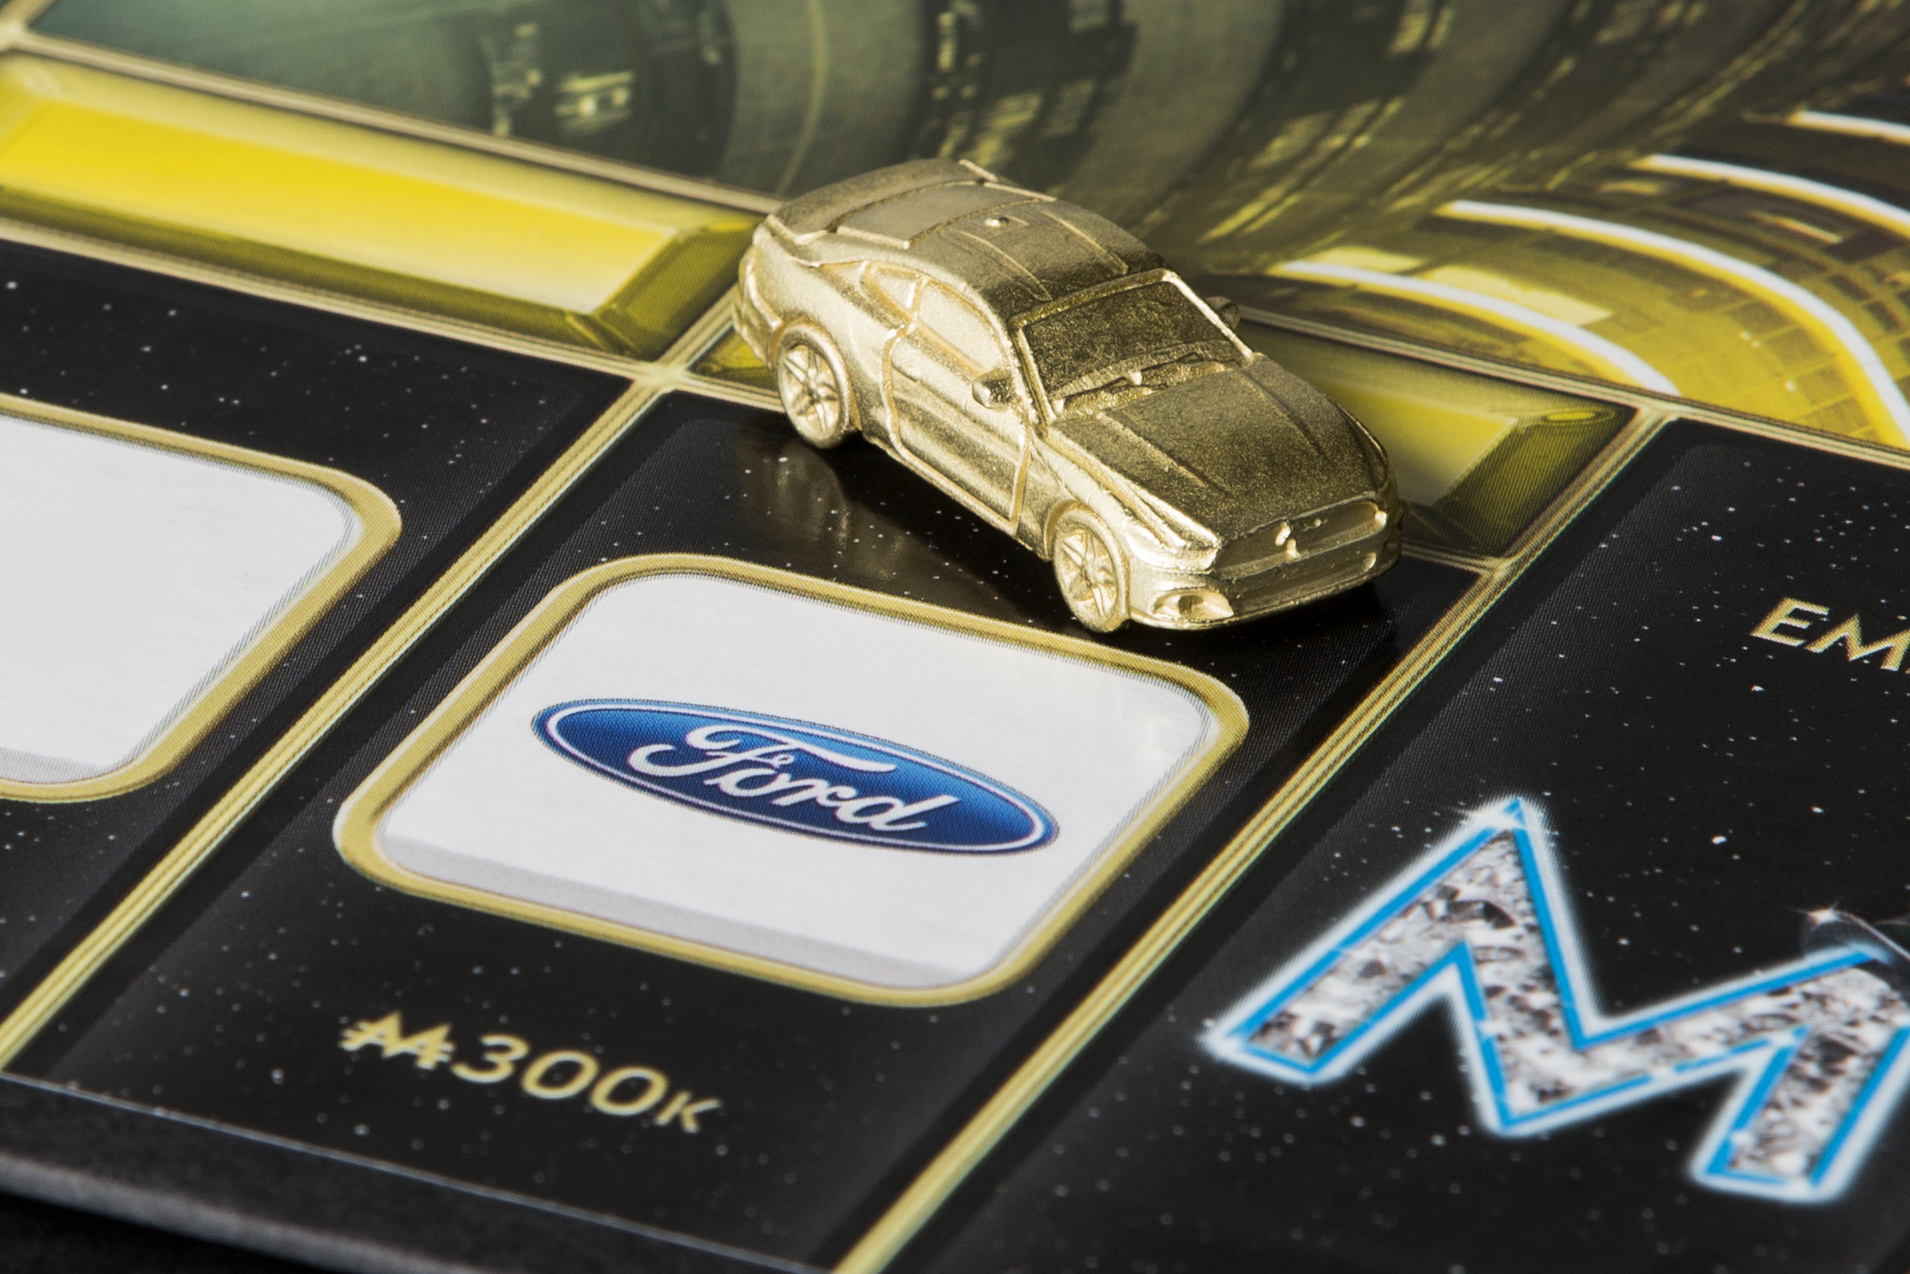 Ford Mustang Monopoly Token